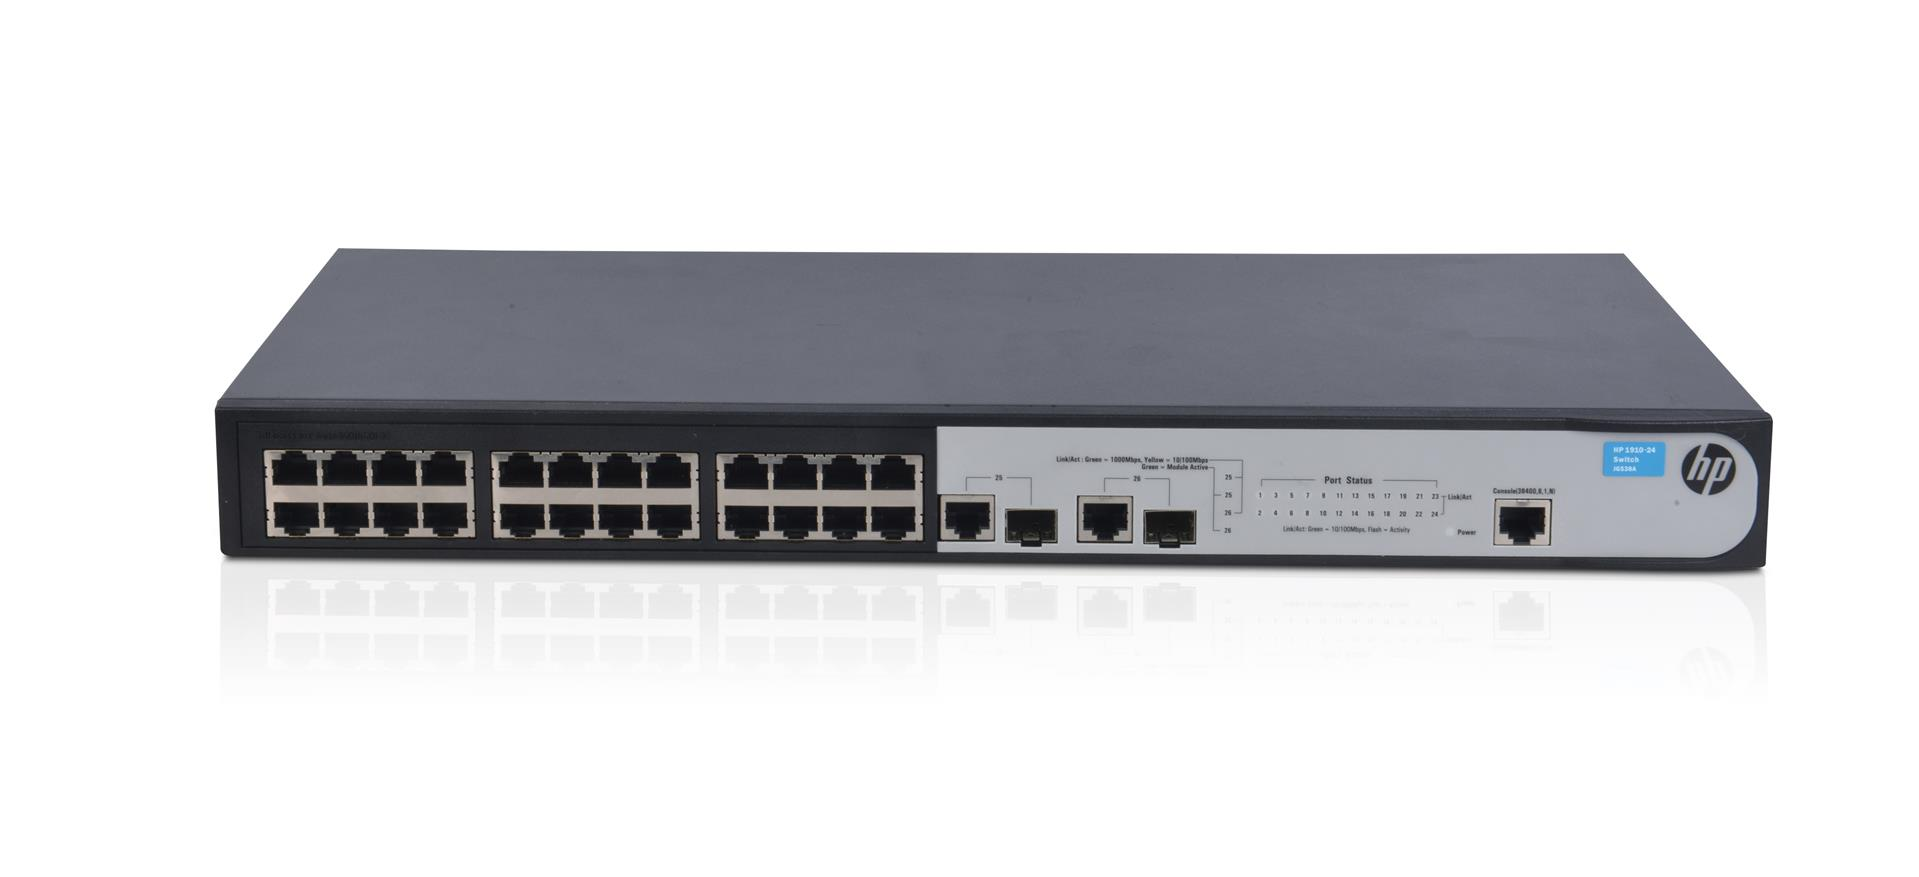 HPE 1910 24 Switch